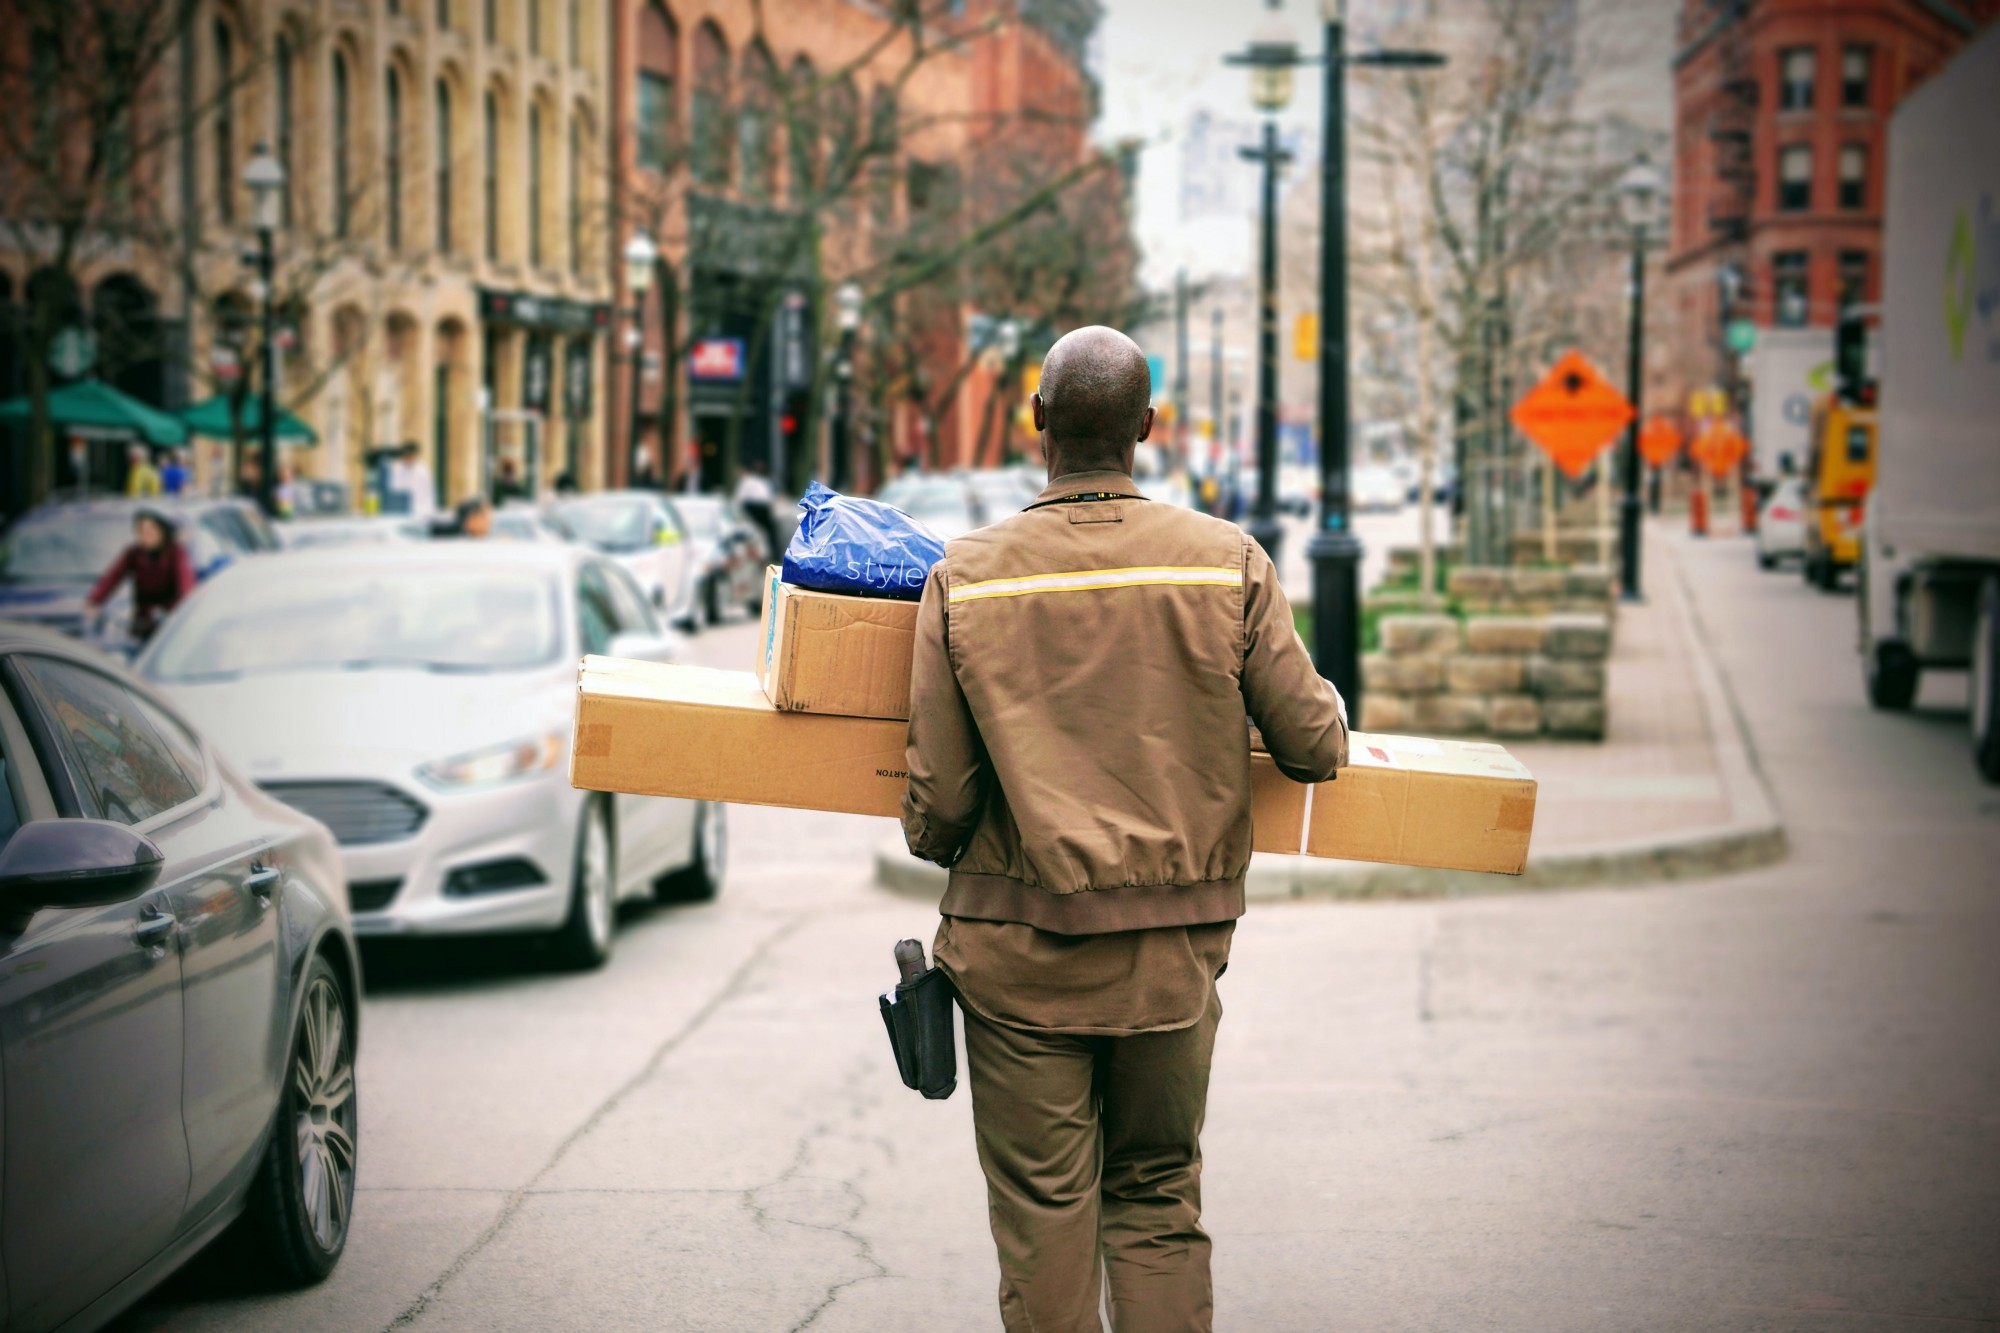 A delivery driver carrying parcels